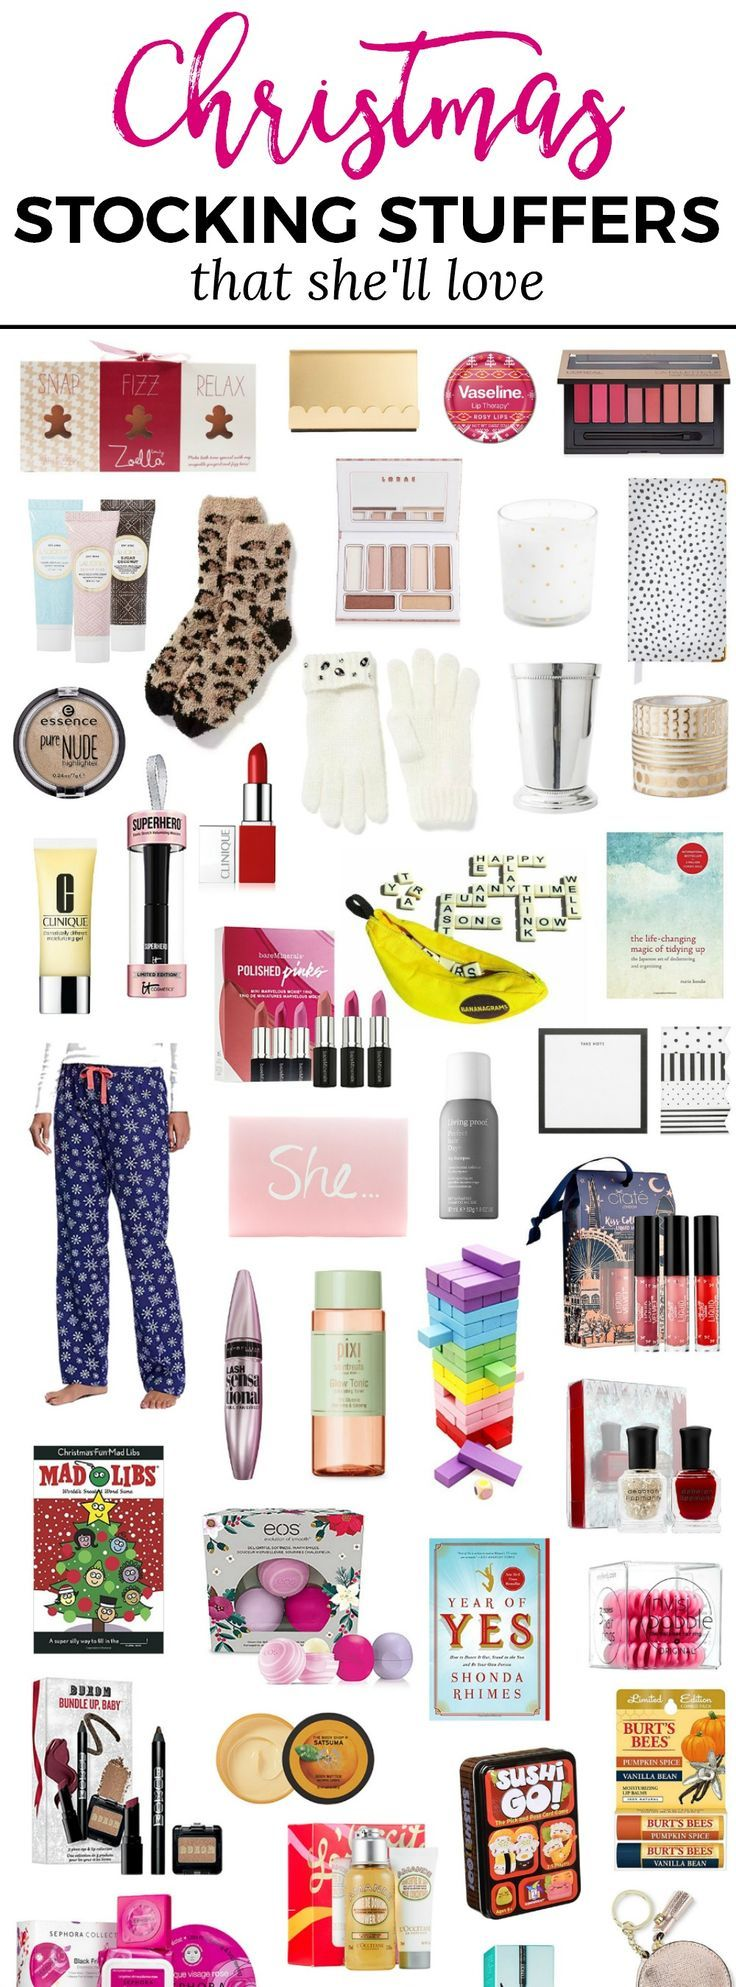 Best Stocking Stuffers The Best Christmas Stocking Stuffers For Women You Won't Want To